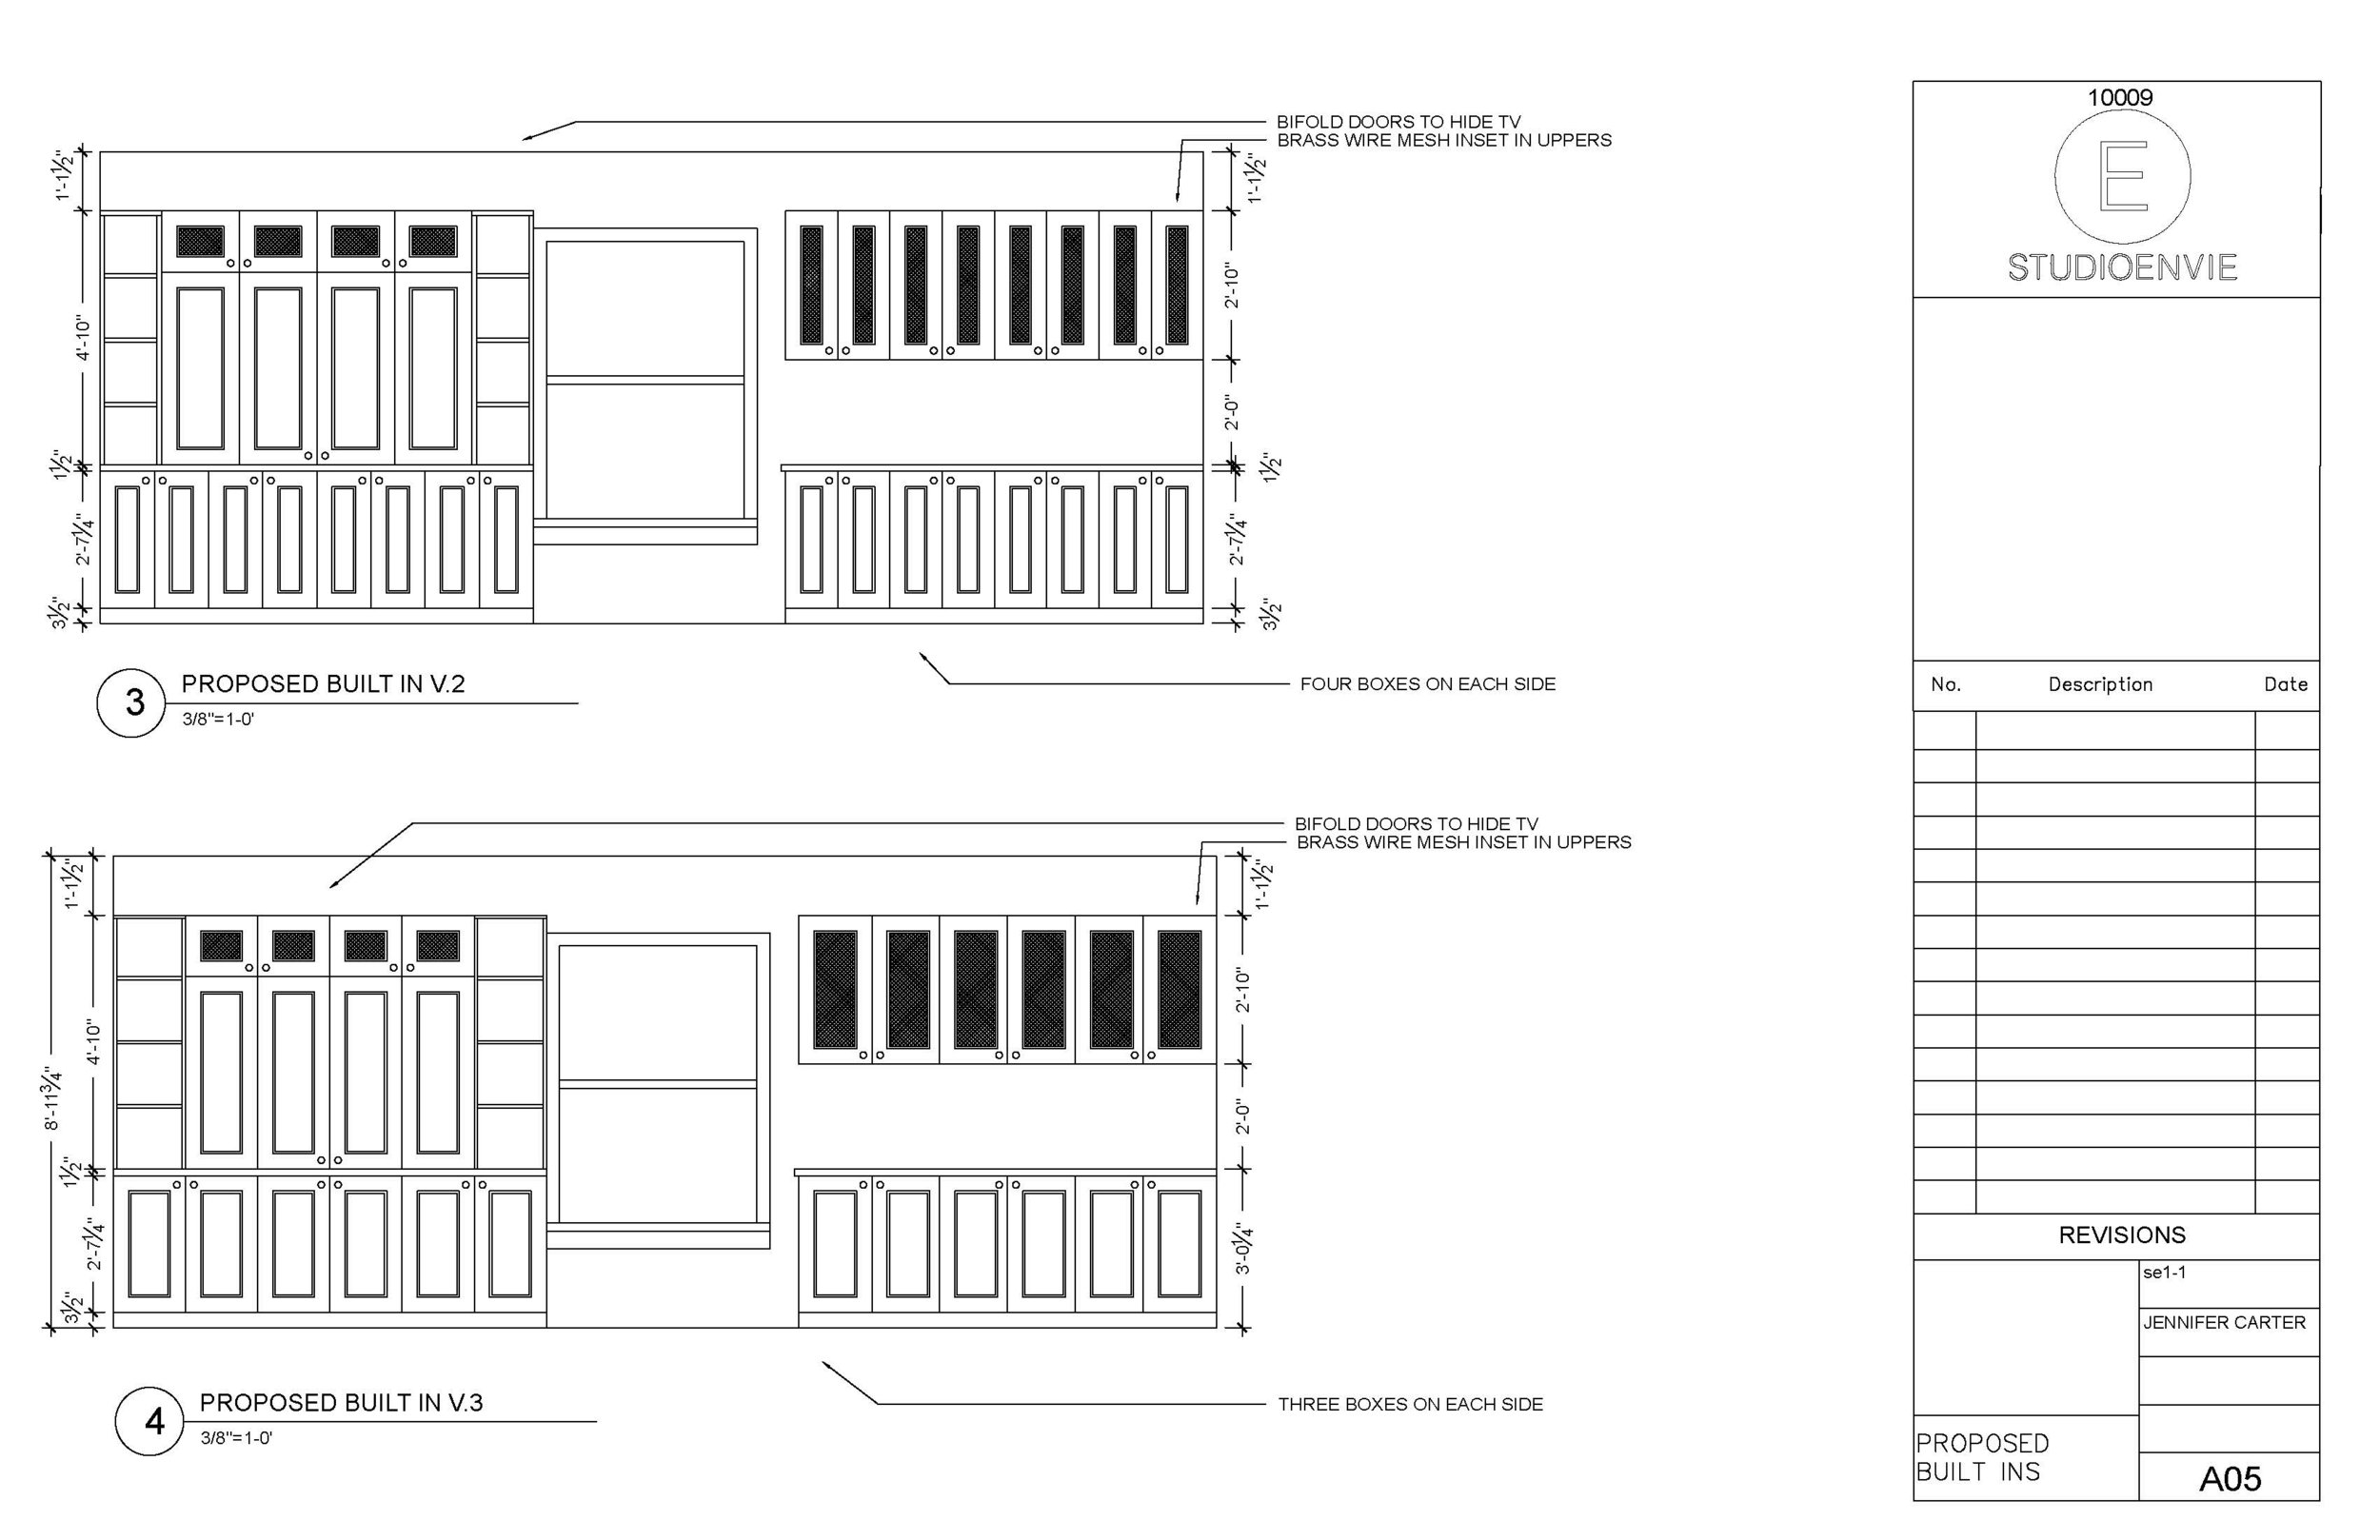 Here's an example of drawings we created for custom built-ins for a client. In this instance, we were limited by size because they needed to fit an exact space. But we had many options for what they looked like in that space.We started sketching designs with different box configurations and door styles,with open cabinets in different places and more. These are two of the final versions we settled on after a few revisions.